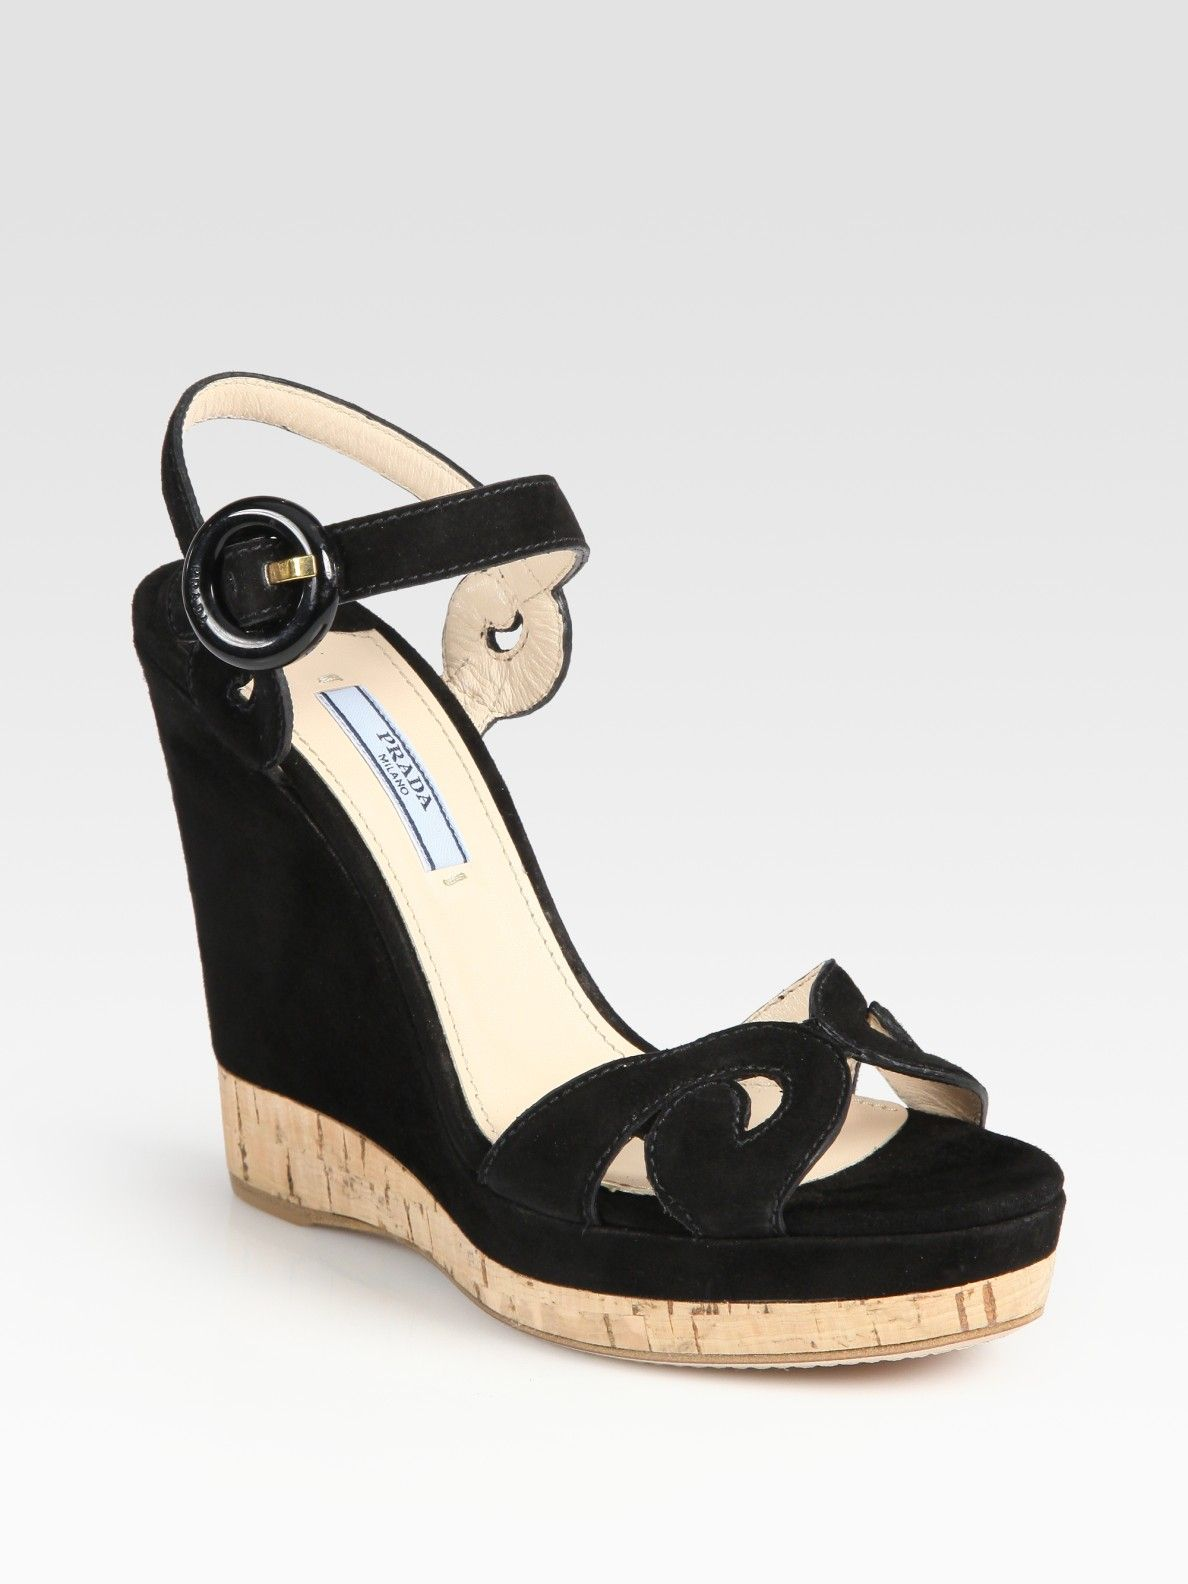 f4711f18ae8e Prada Suede and Cork Wedge Sandals in Black